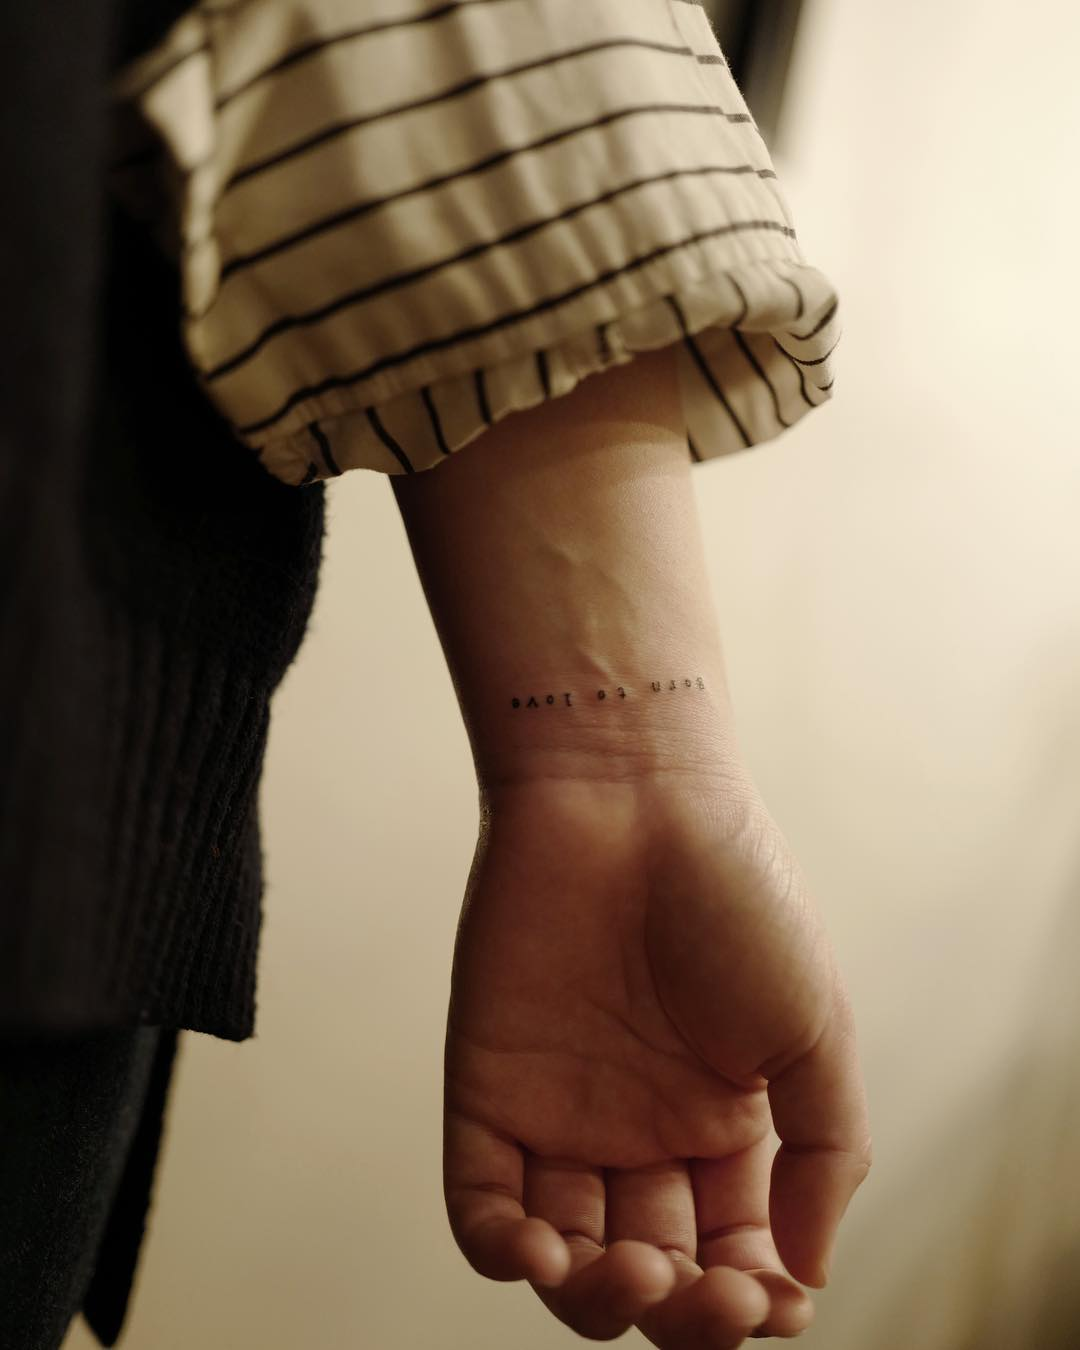 Born to love by @tattoo_a_piece